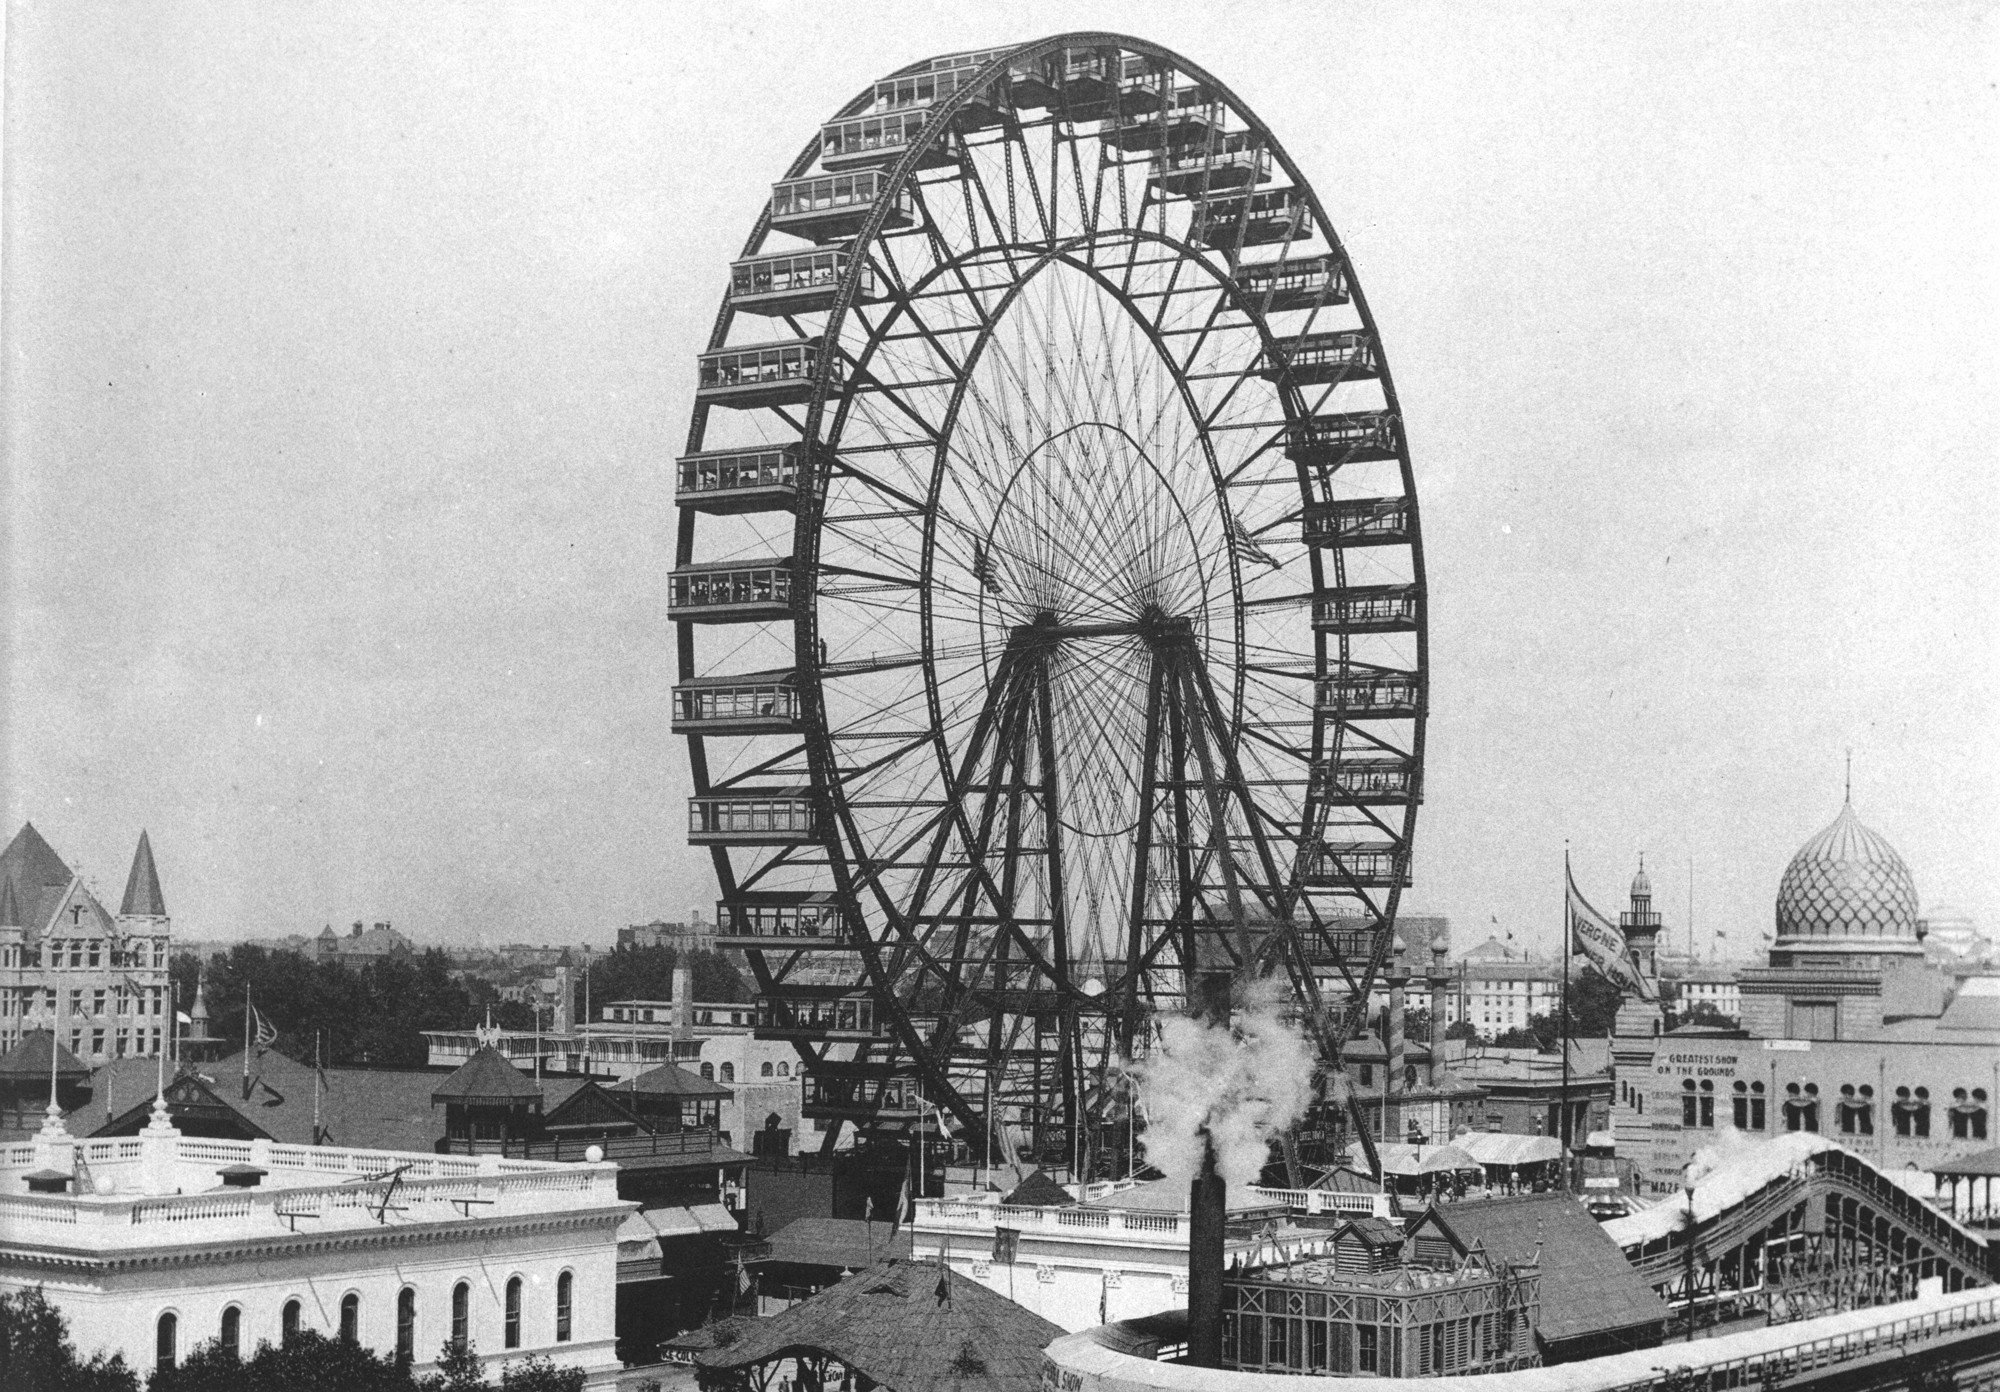 The History of It All: The Original 1893 Chicago World's Fair Ferris Wheel